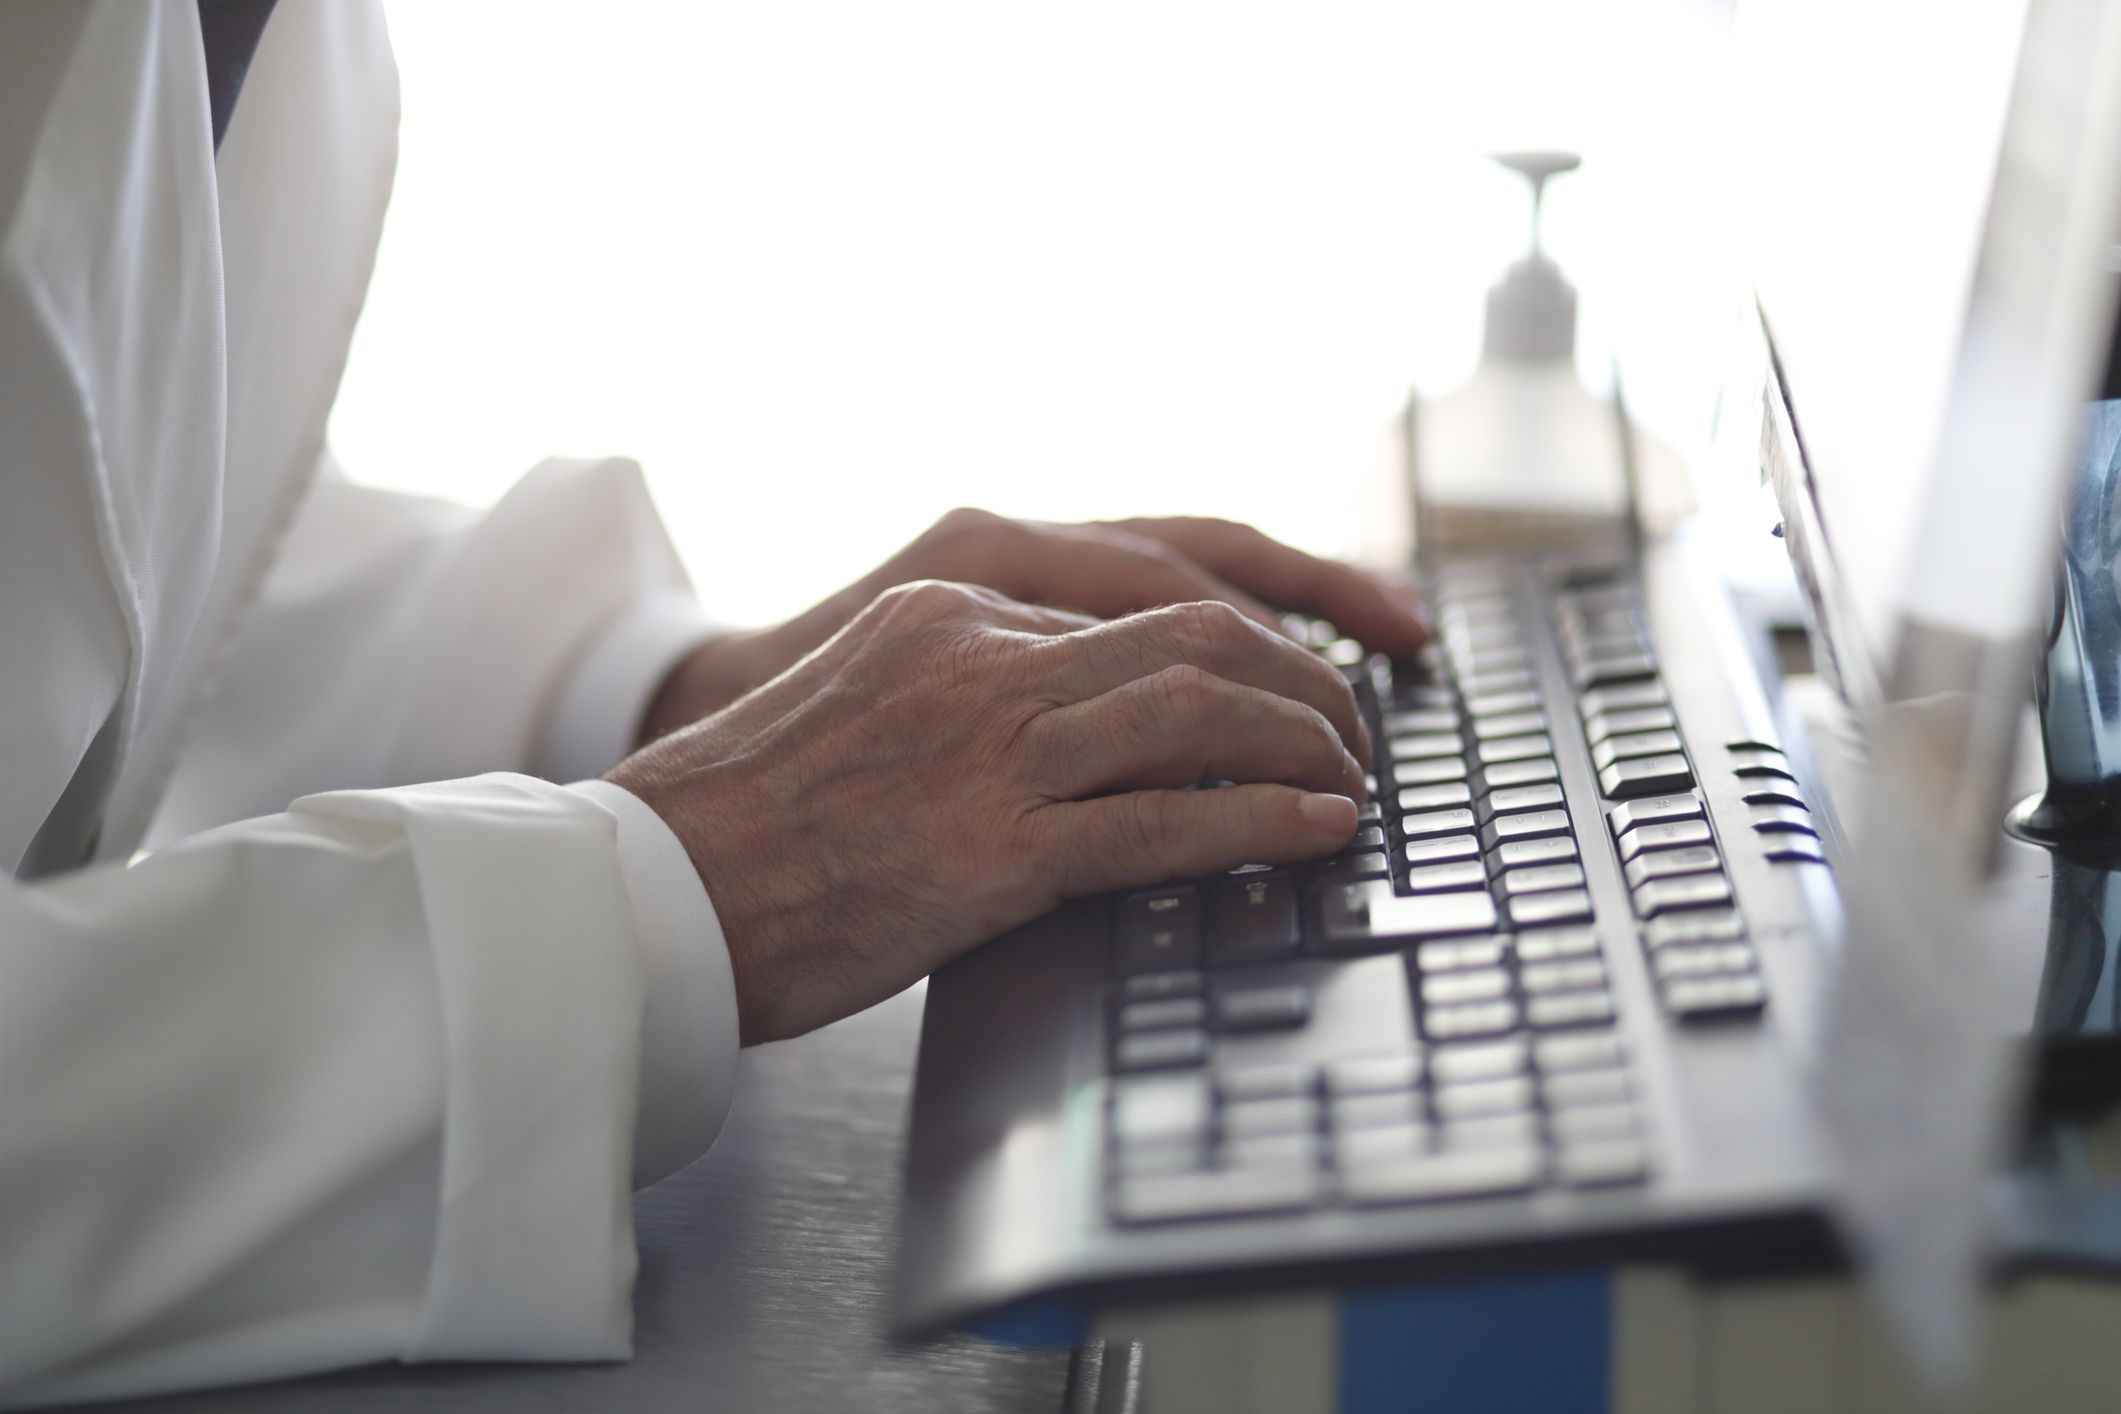 Detailed shot of person in a lab coat's hands typing on a computer.